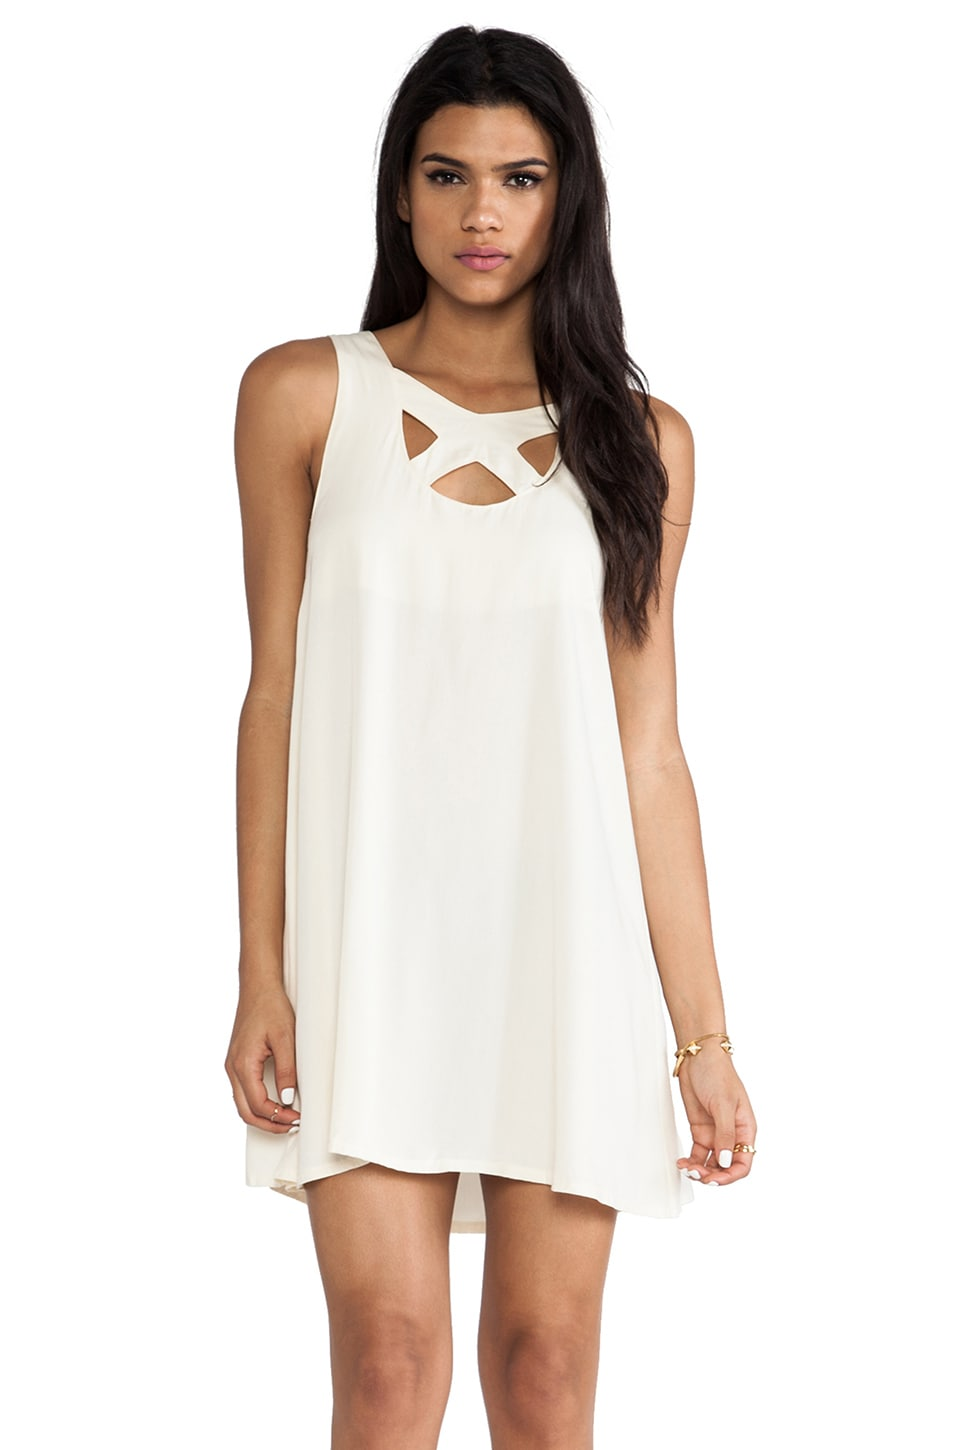 LENNI XX Dress in Cream